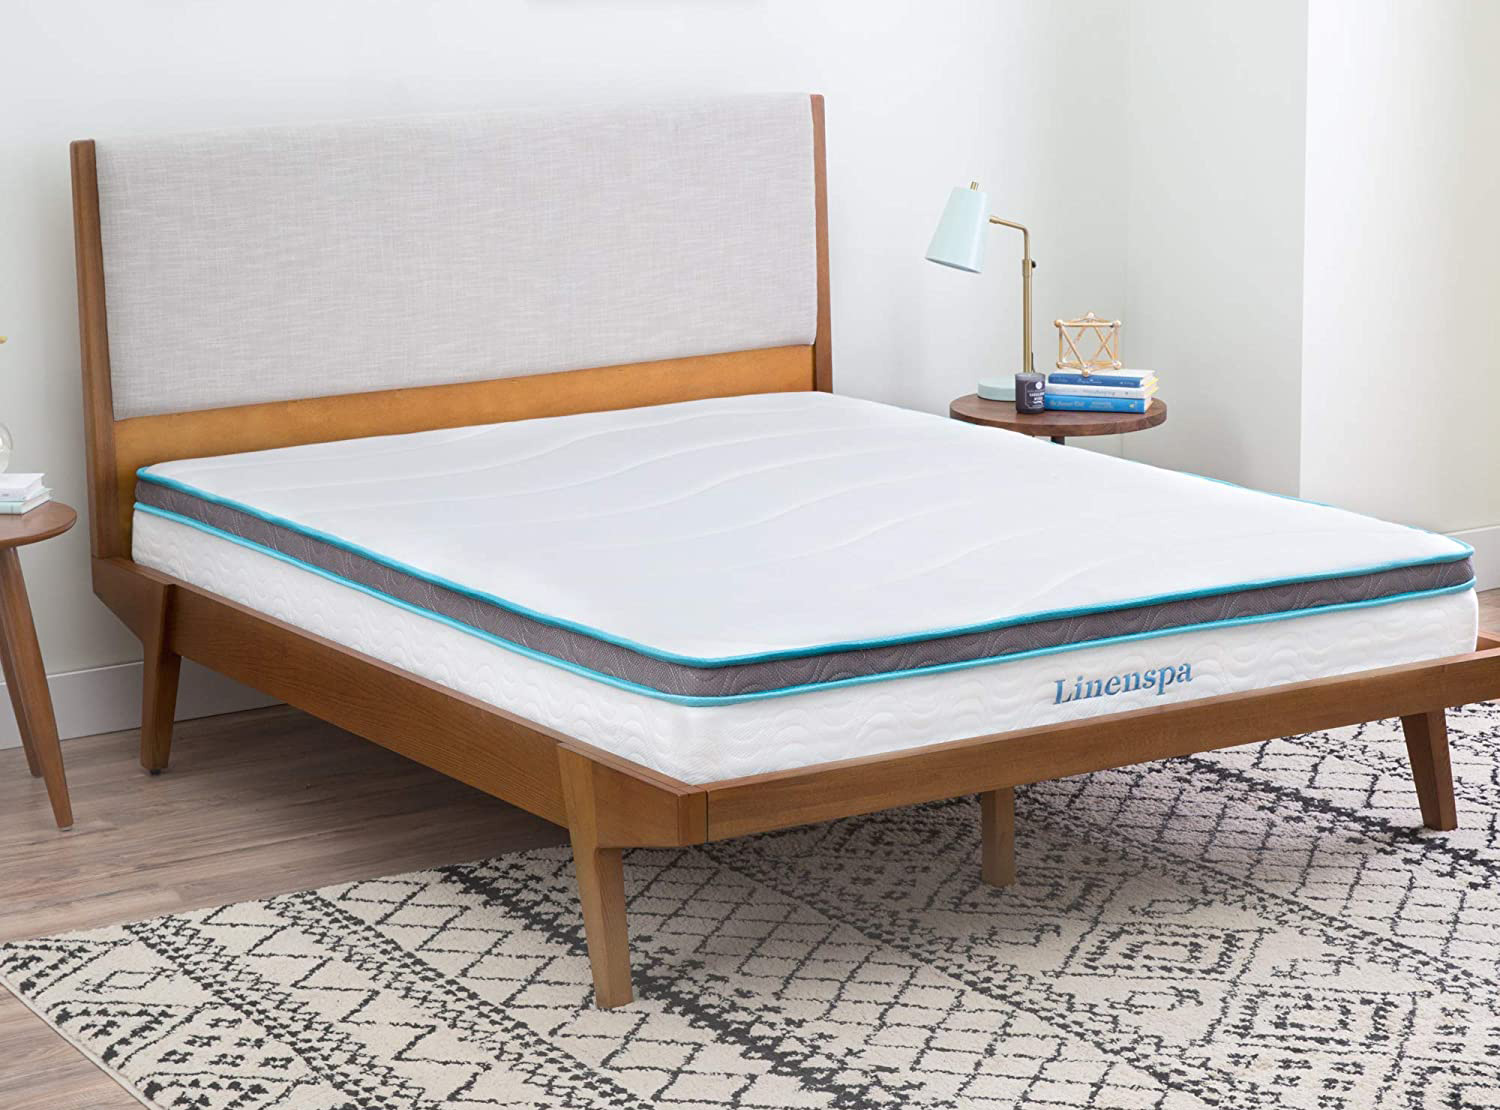 Picture of: Hybrid Memory Foam Mattresses With 40 000 5 Star Ratings Start At 112 In Amazon S One Day Sale Bgr